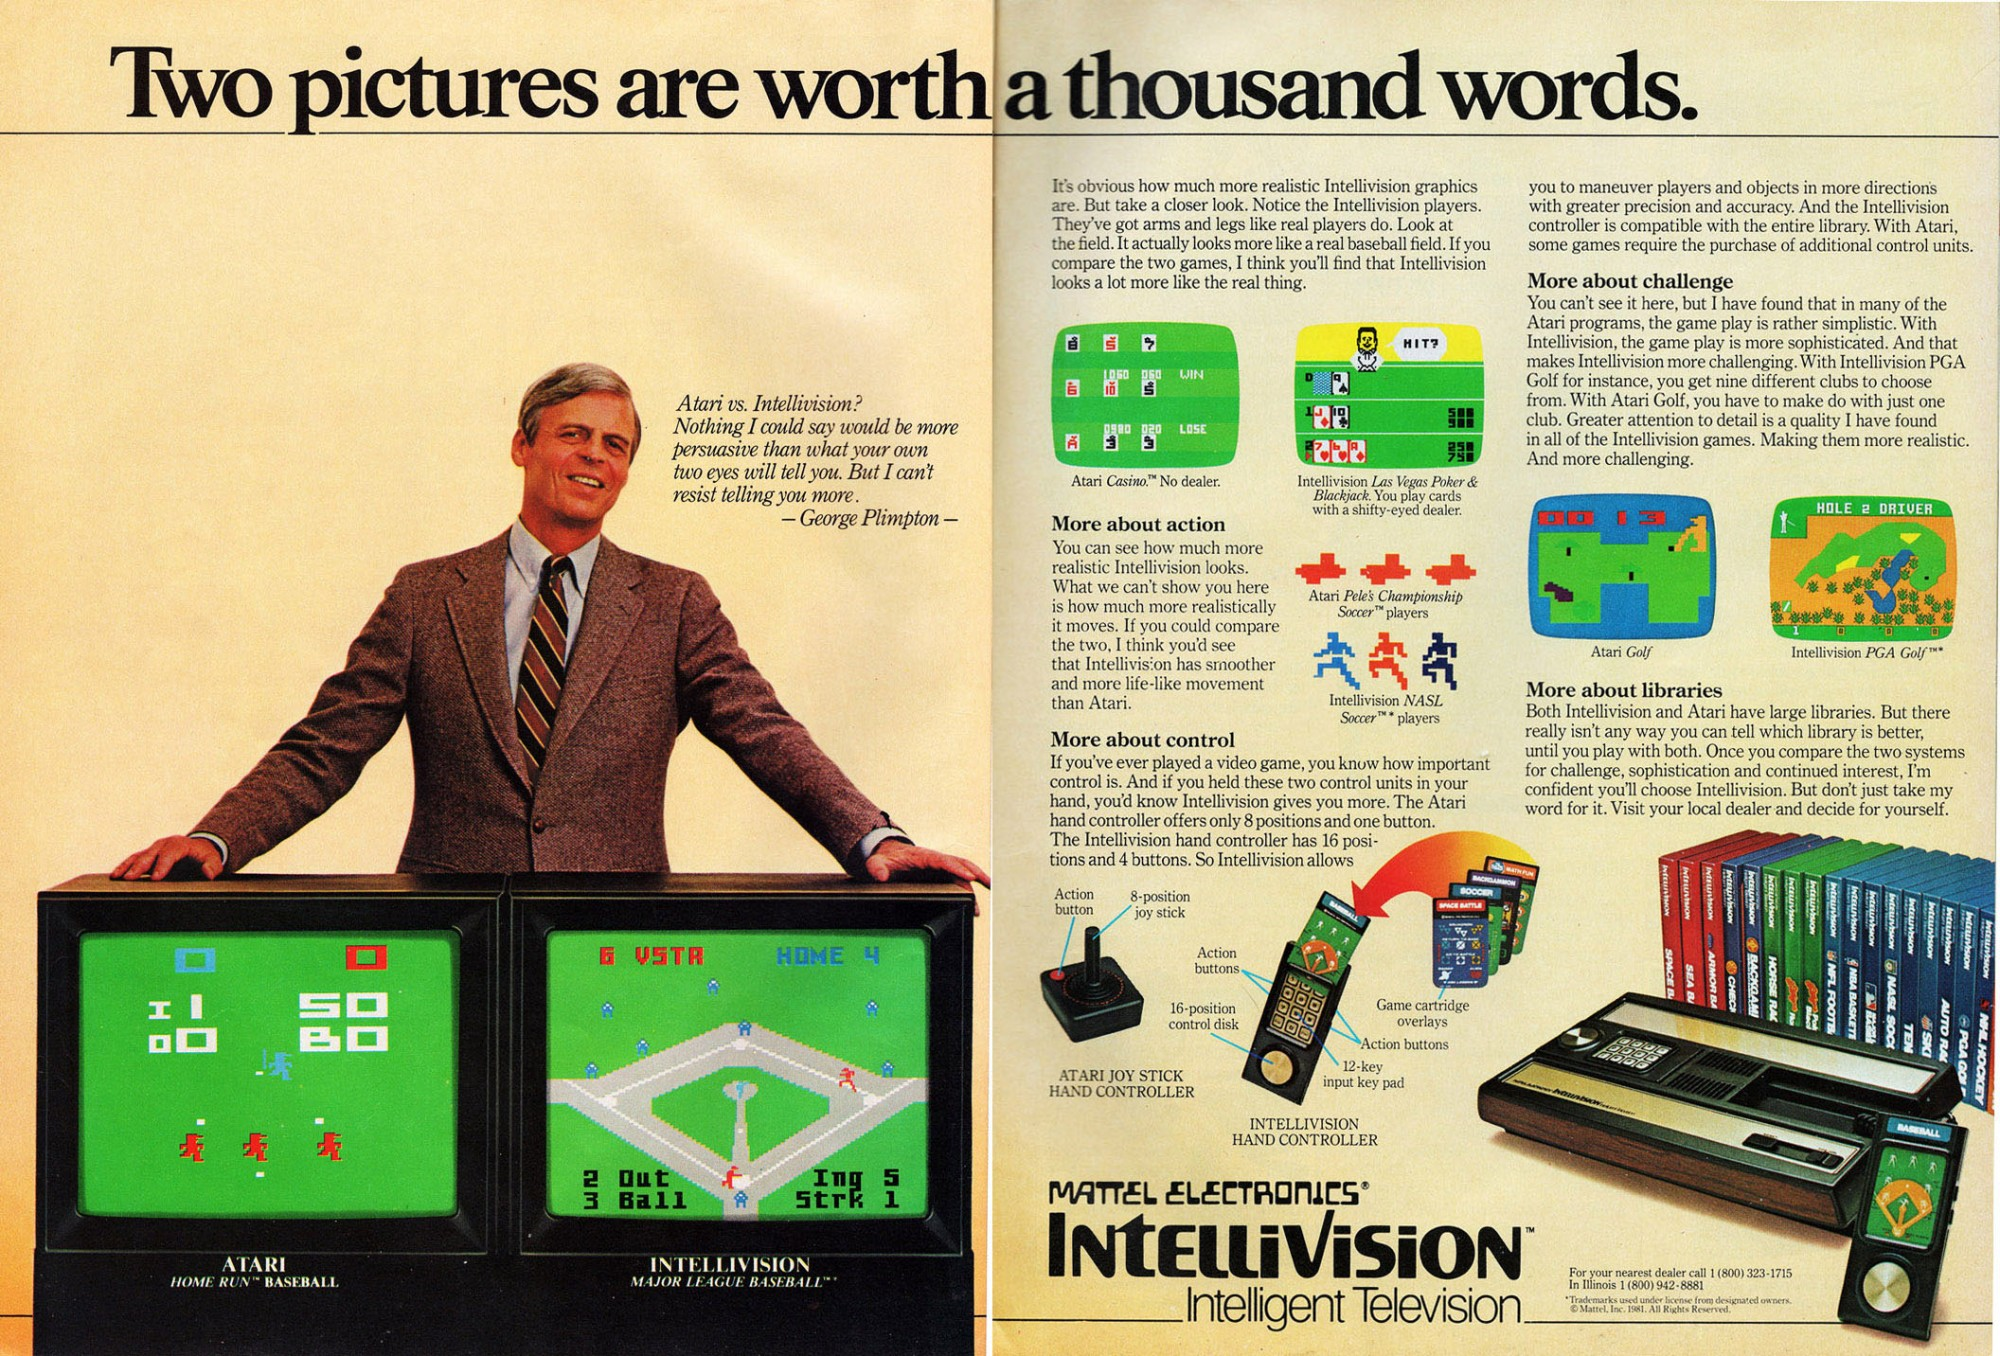 intellivision plimpton 1981